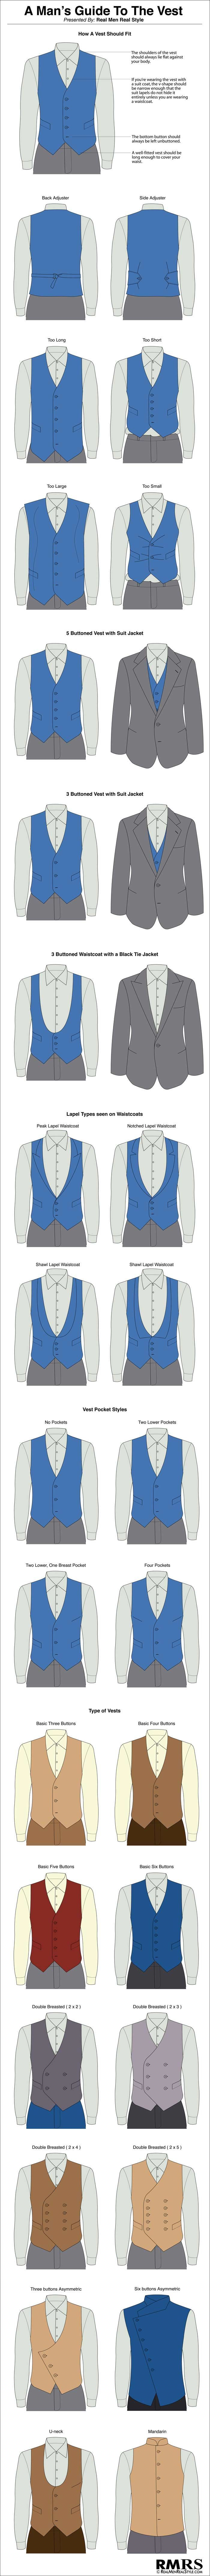 How To Wear Men's Vests - Infographic How do you wear your vest? There are chances that you might be wearing it all wrong. There are a lot of factors that you